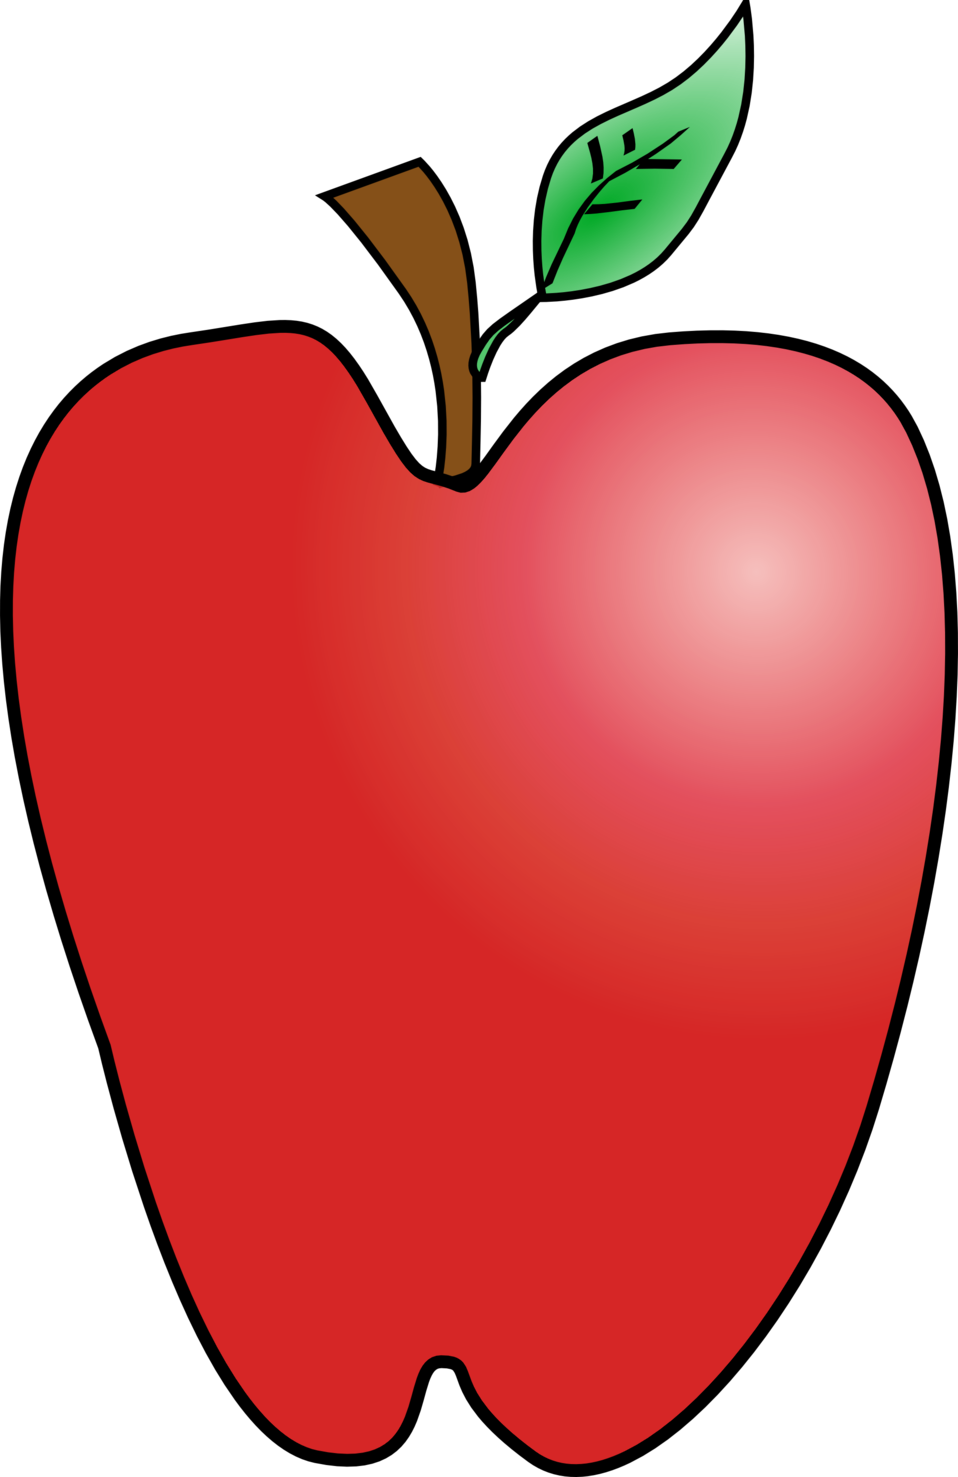 Librarian apple clipart clipart transparent download Public Domain Clip Art Image | Illustration of a red apple | ID ... clipart transparent download